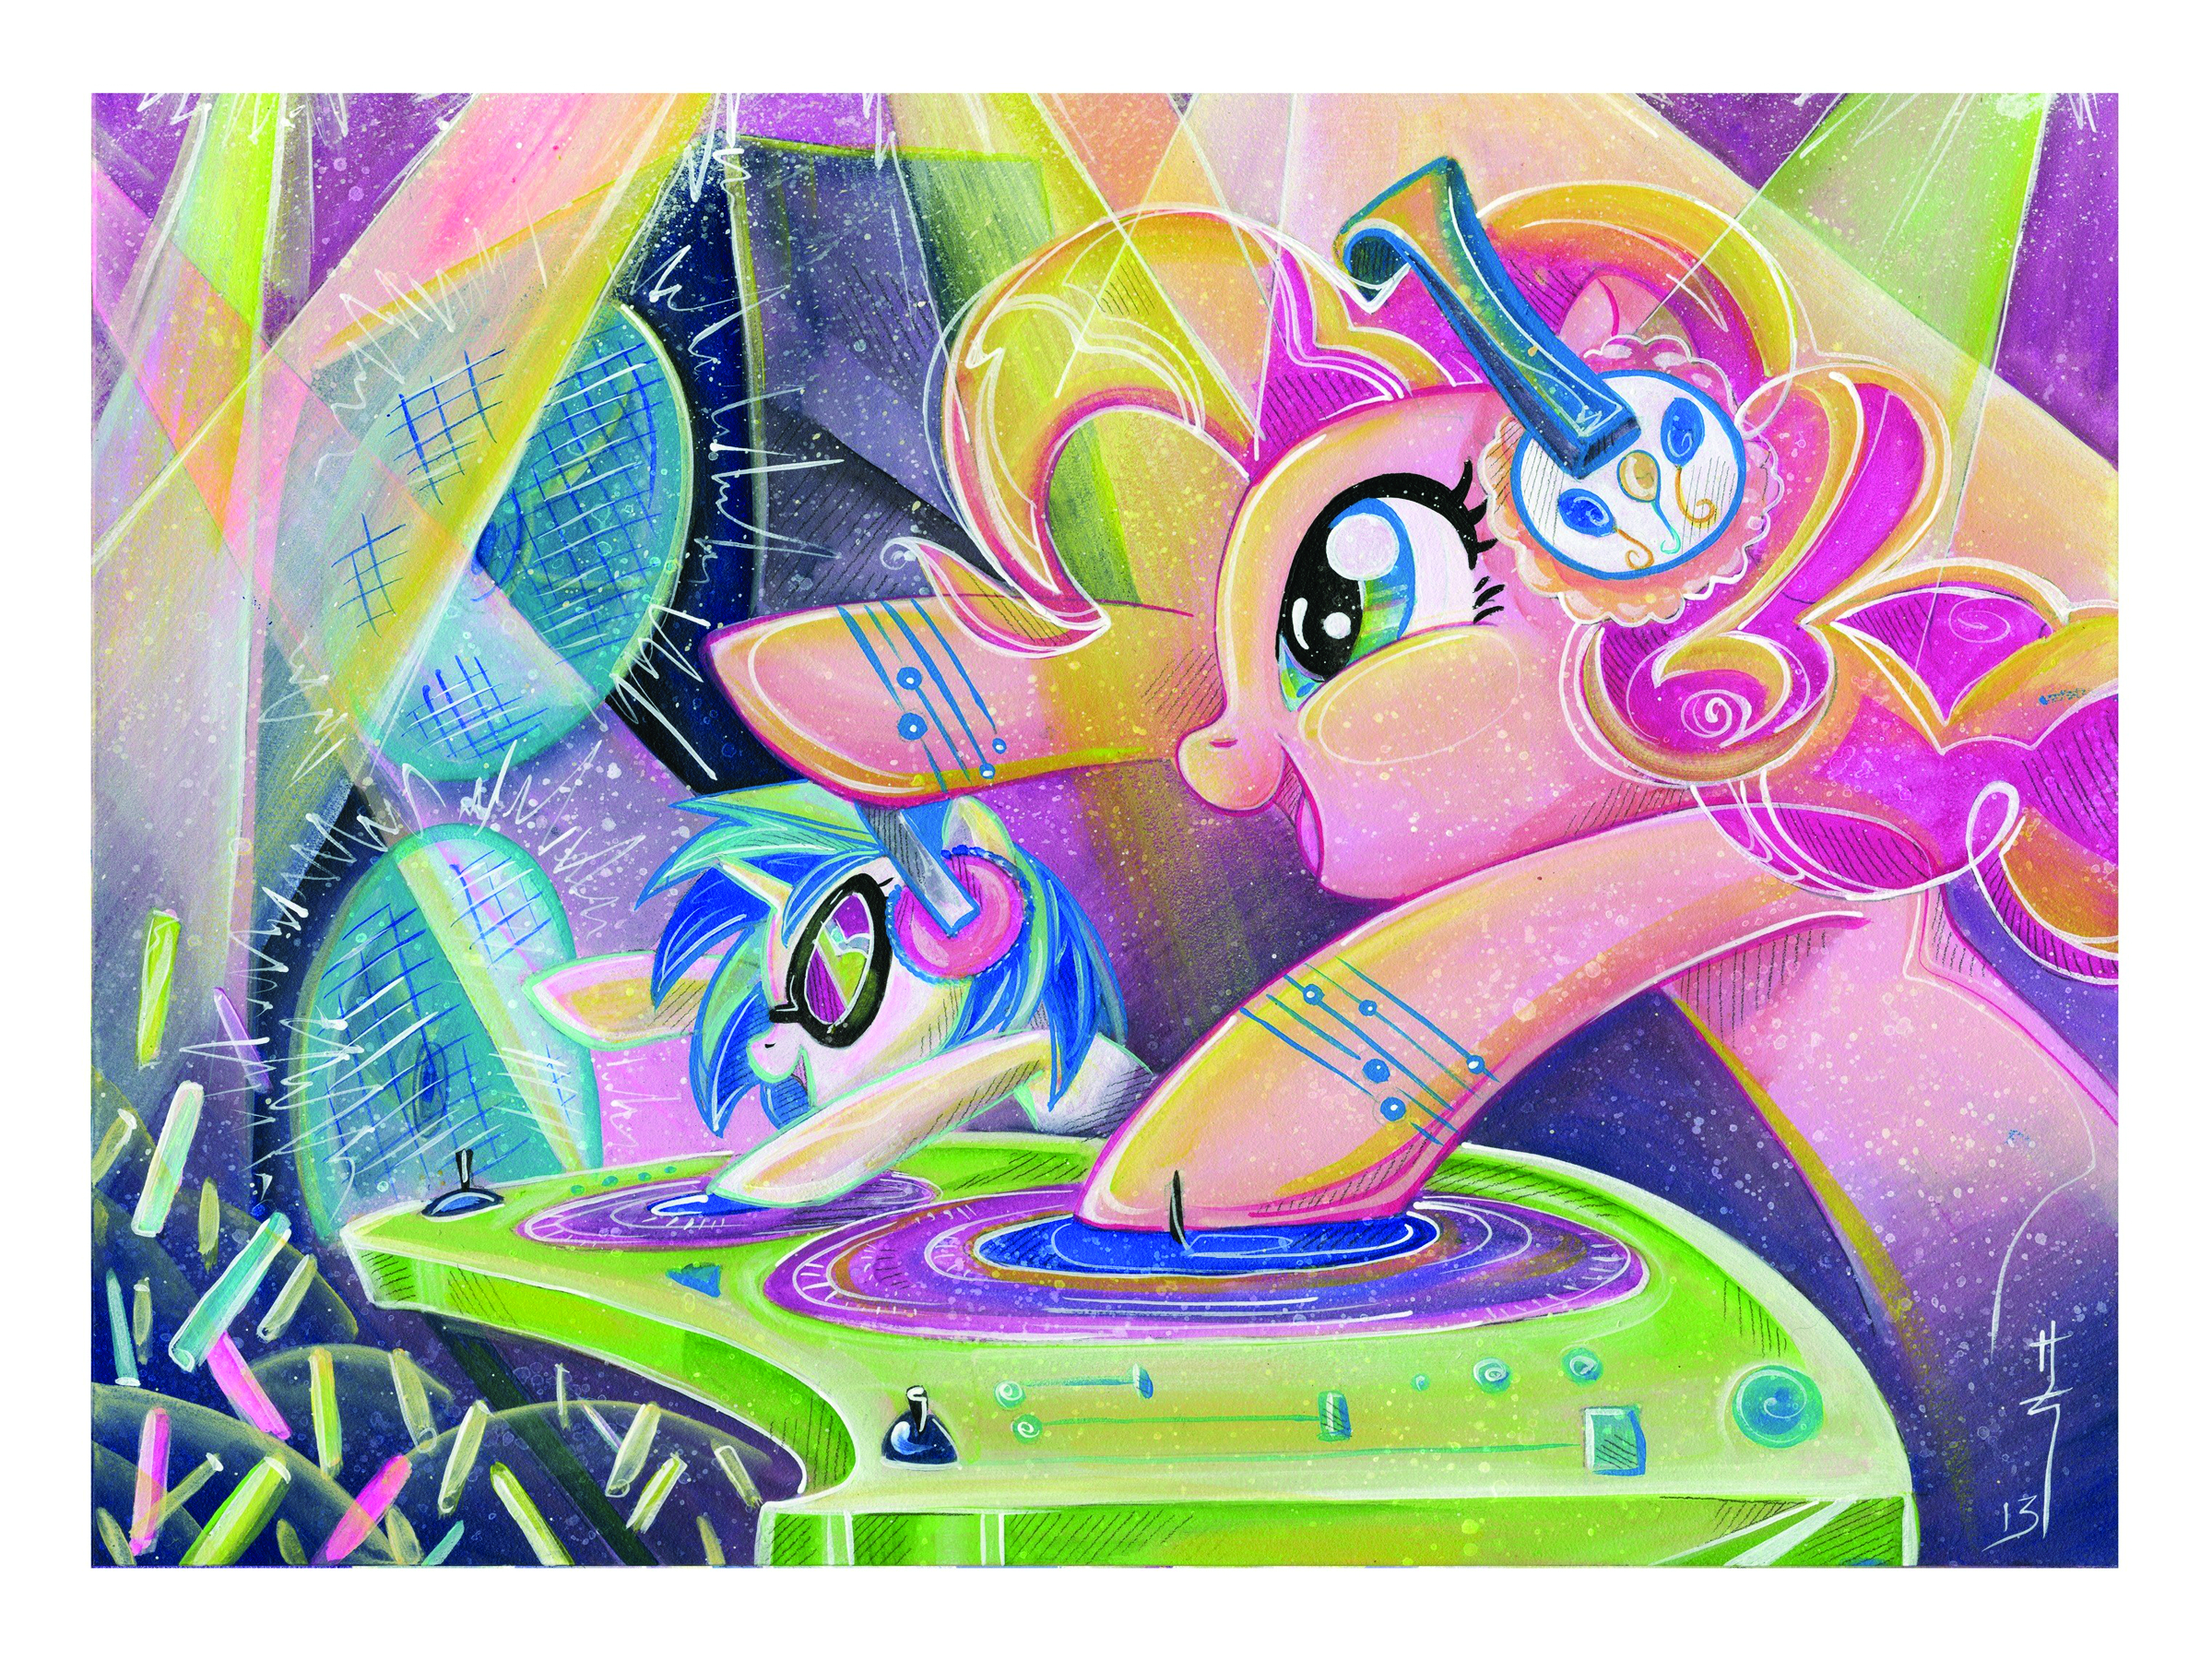 MY LITTLE PONY PINKIE PIE LITHOGRAPH SIGNED ED